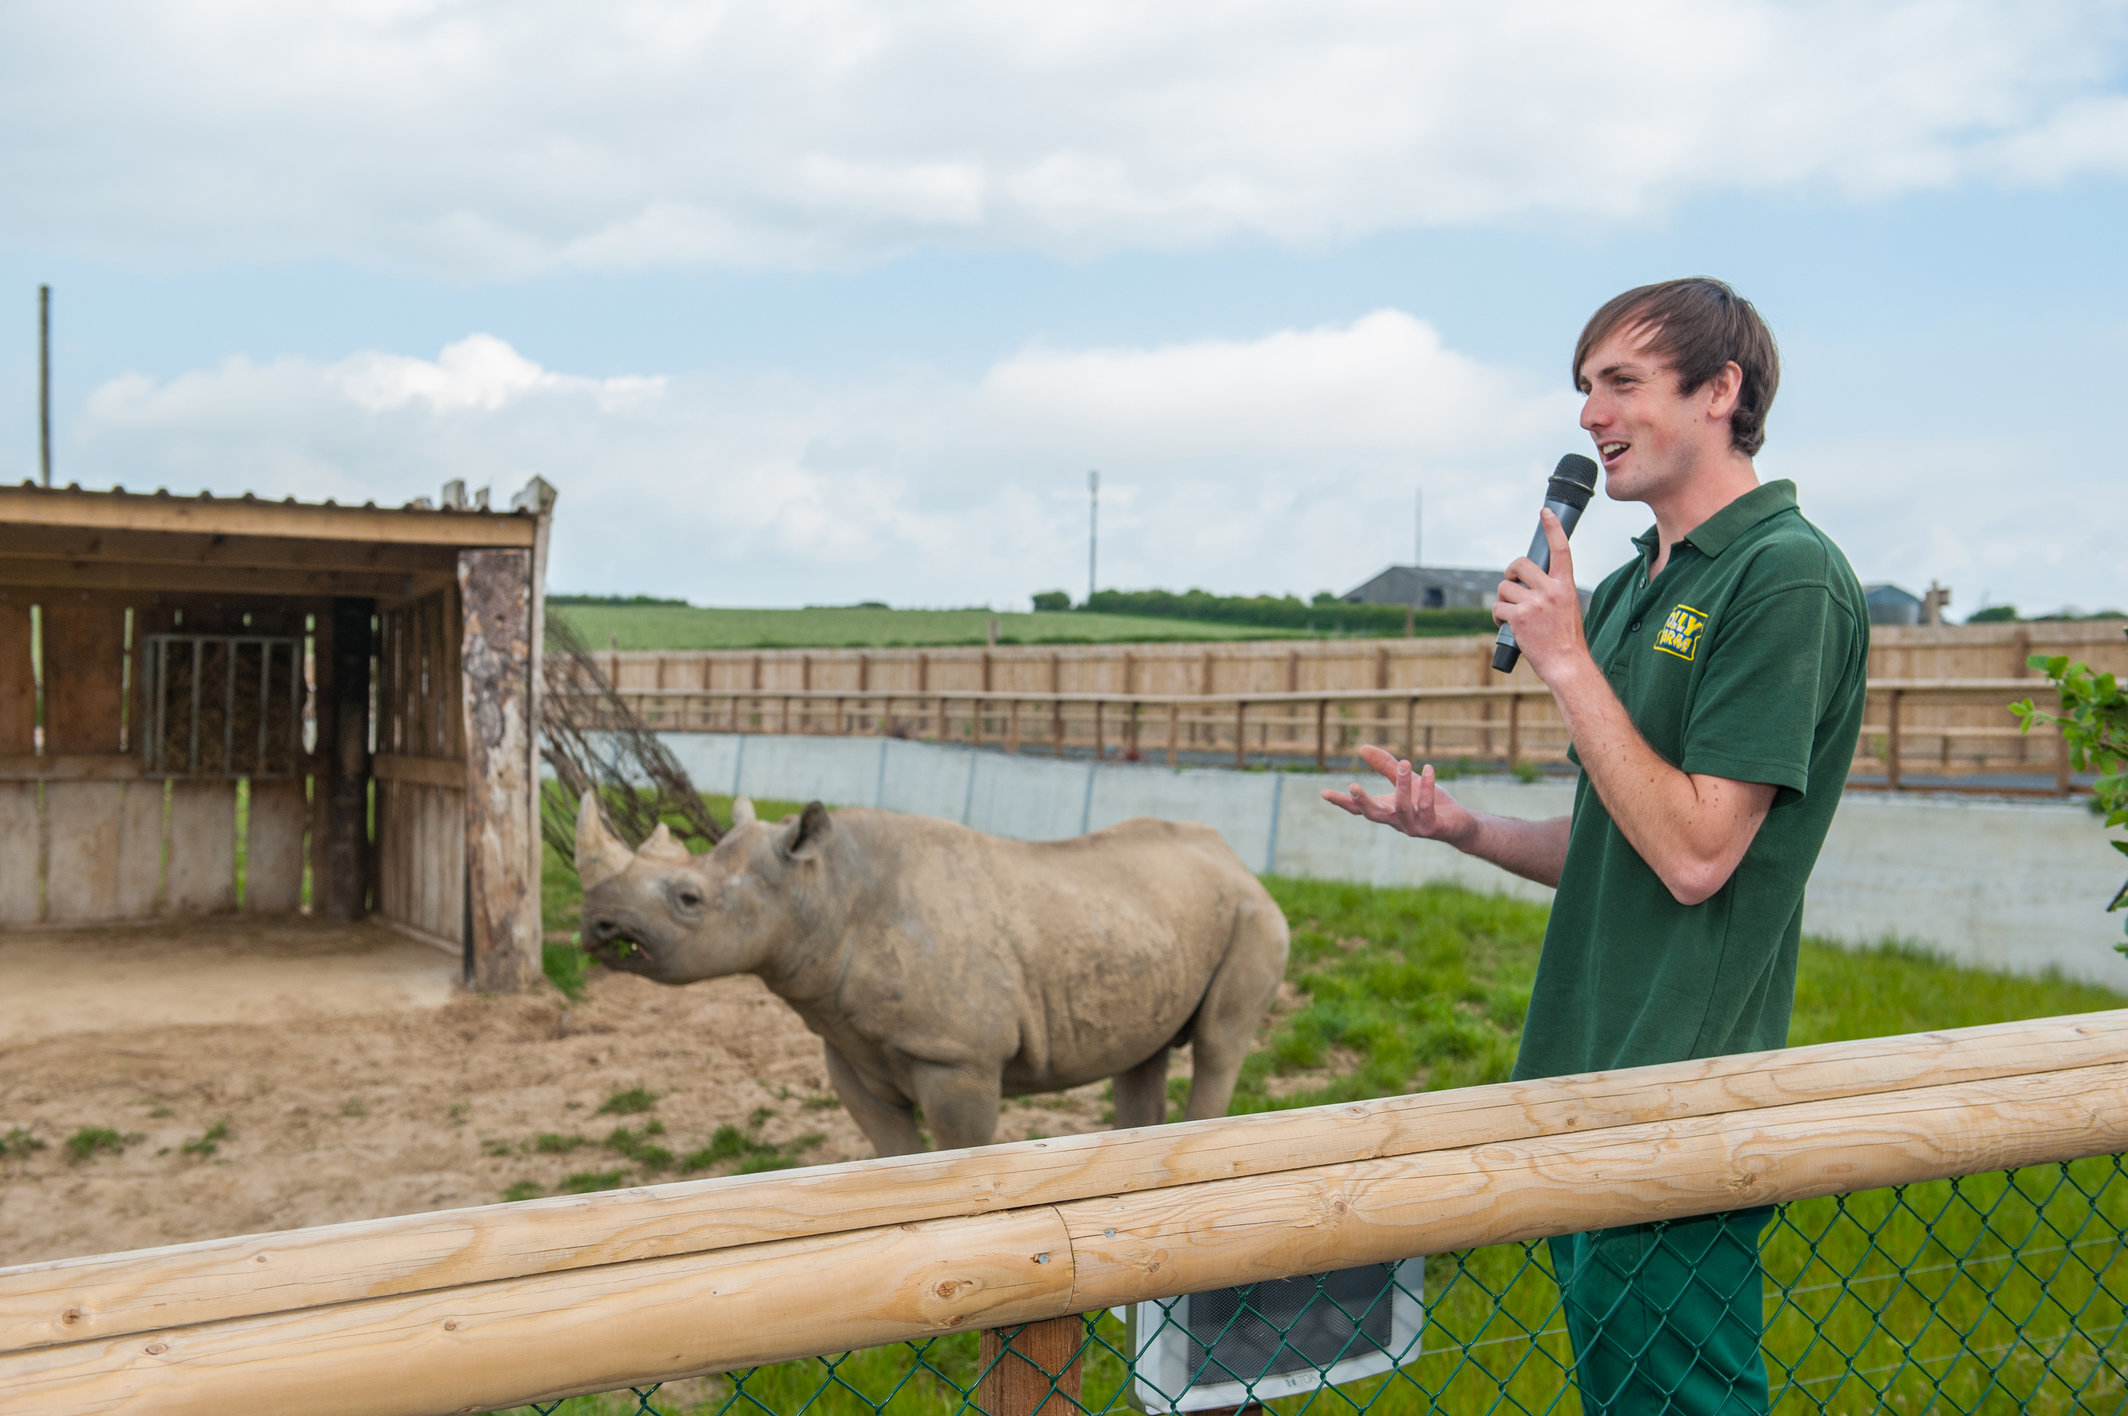 Rhino keeper giving a talk